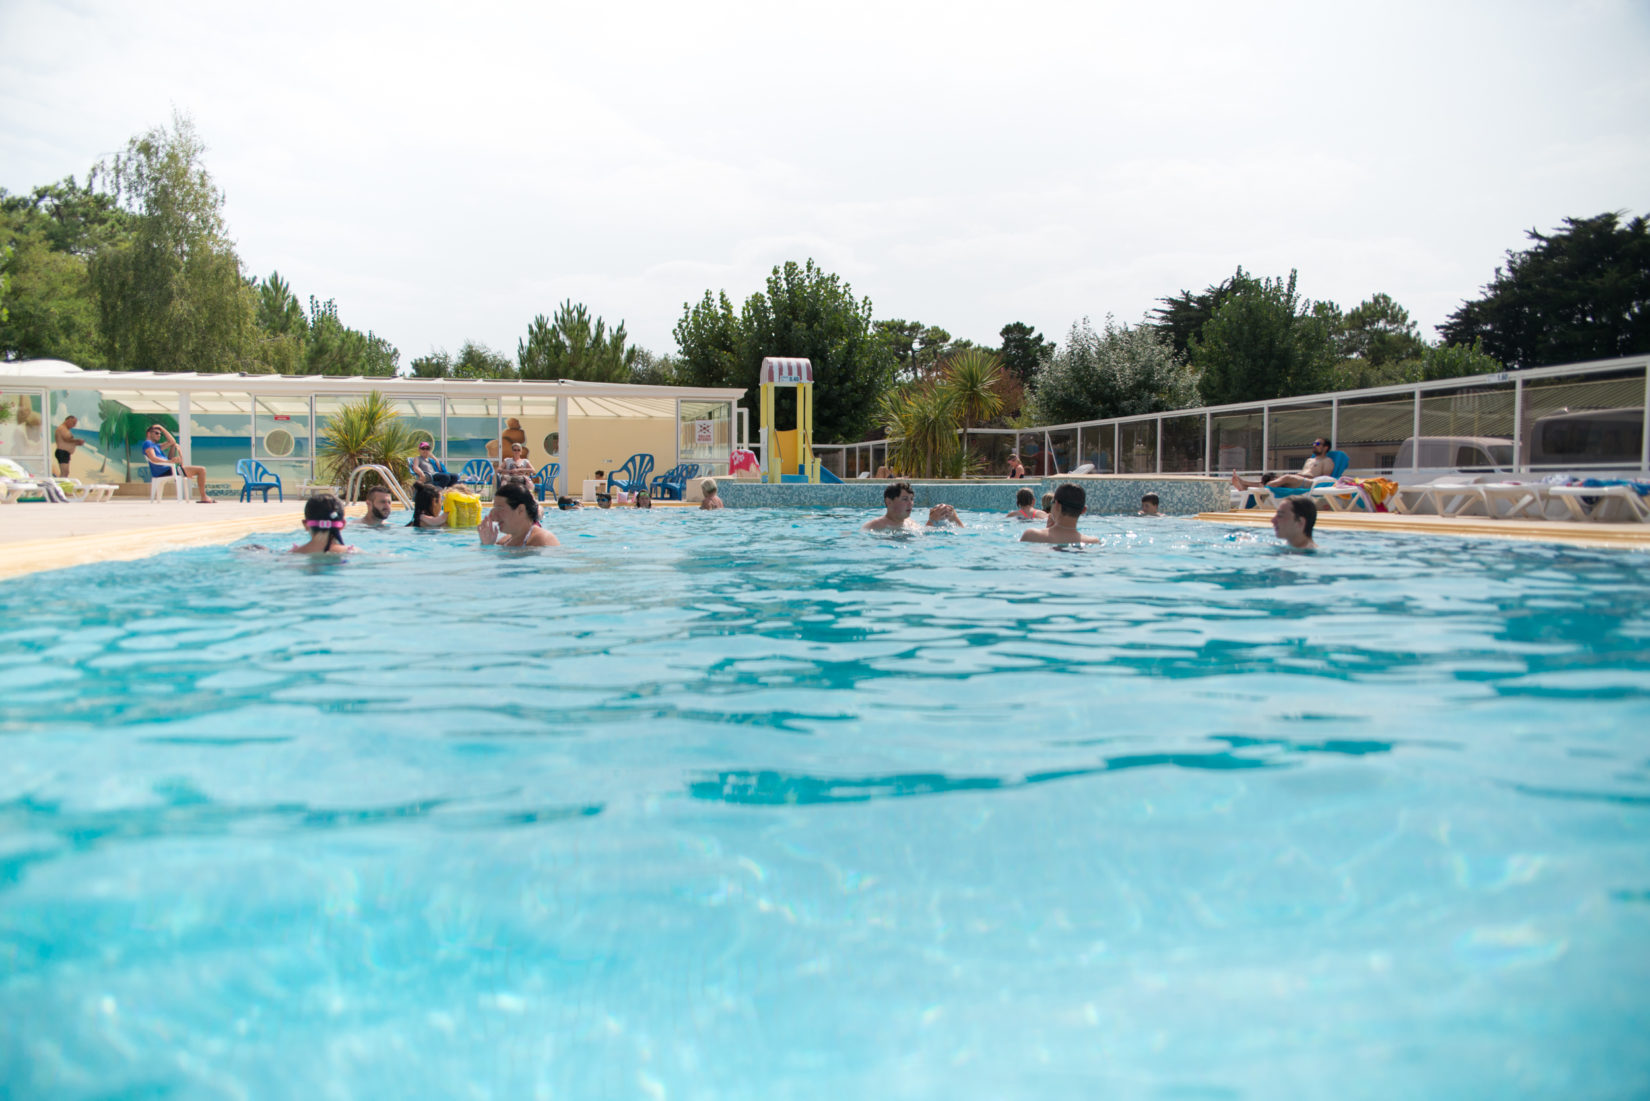 Le camping campings couleurs d 39 t for Camping isere avec piscine